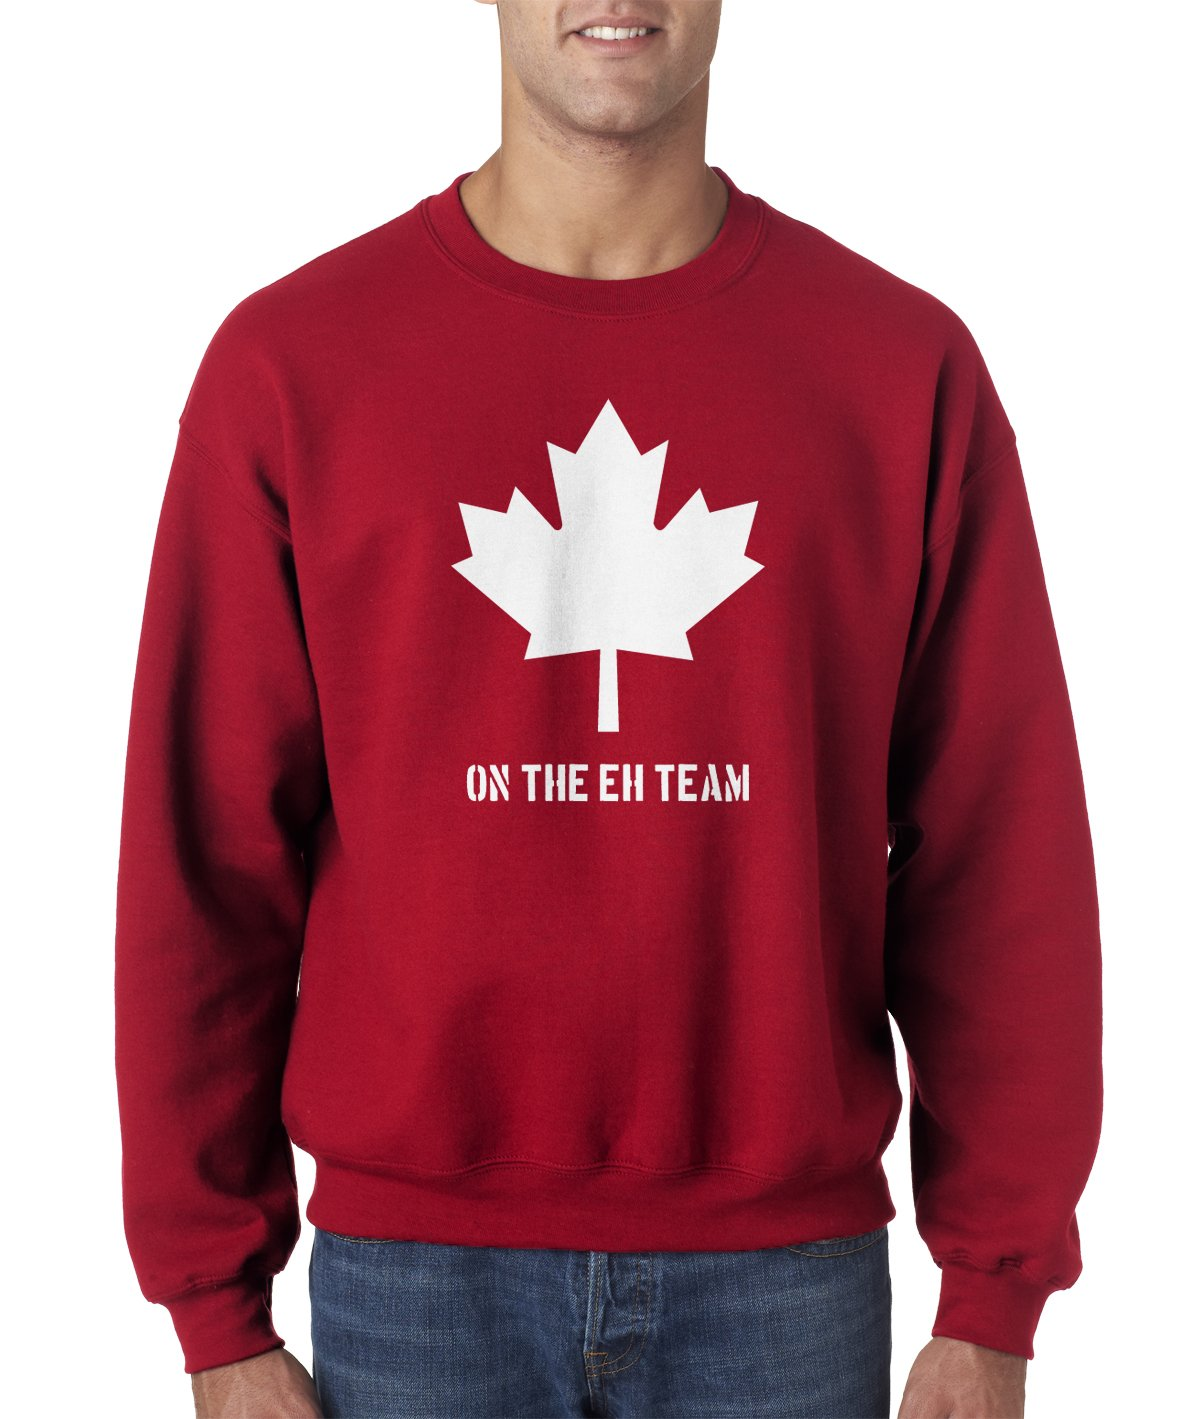 Eh Team Canada Sweater Funny Canadian Shirts Novelty Hilarious Crew Neck Crazy Dog Tshirts